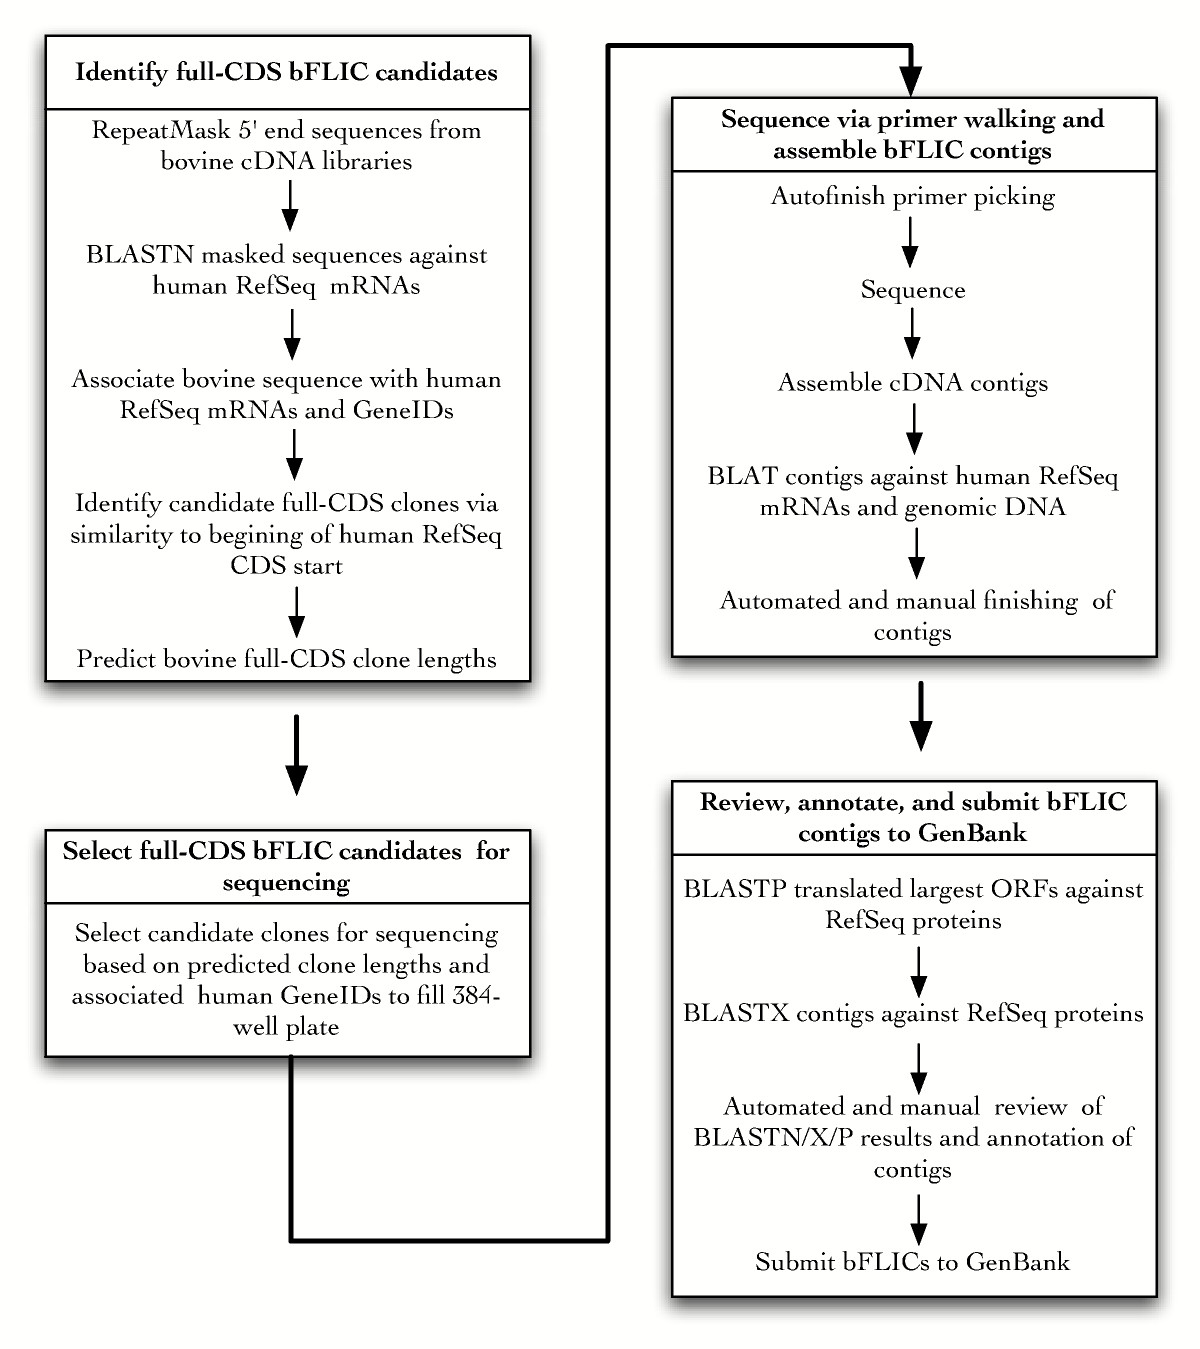 http://static-content.springer.com/image/art%3A10.1186%2F1471-2164-6-166/MediaObjects/12864_2005_Article_367_Fig1_HTML.jpg